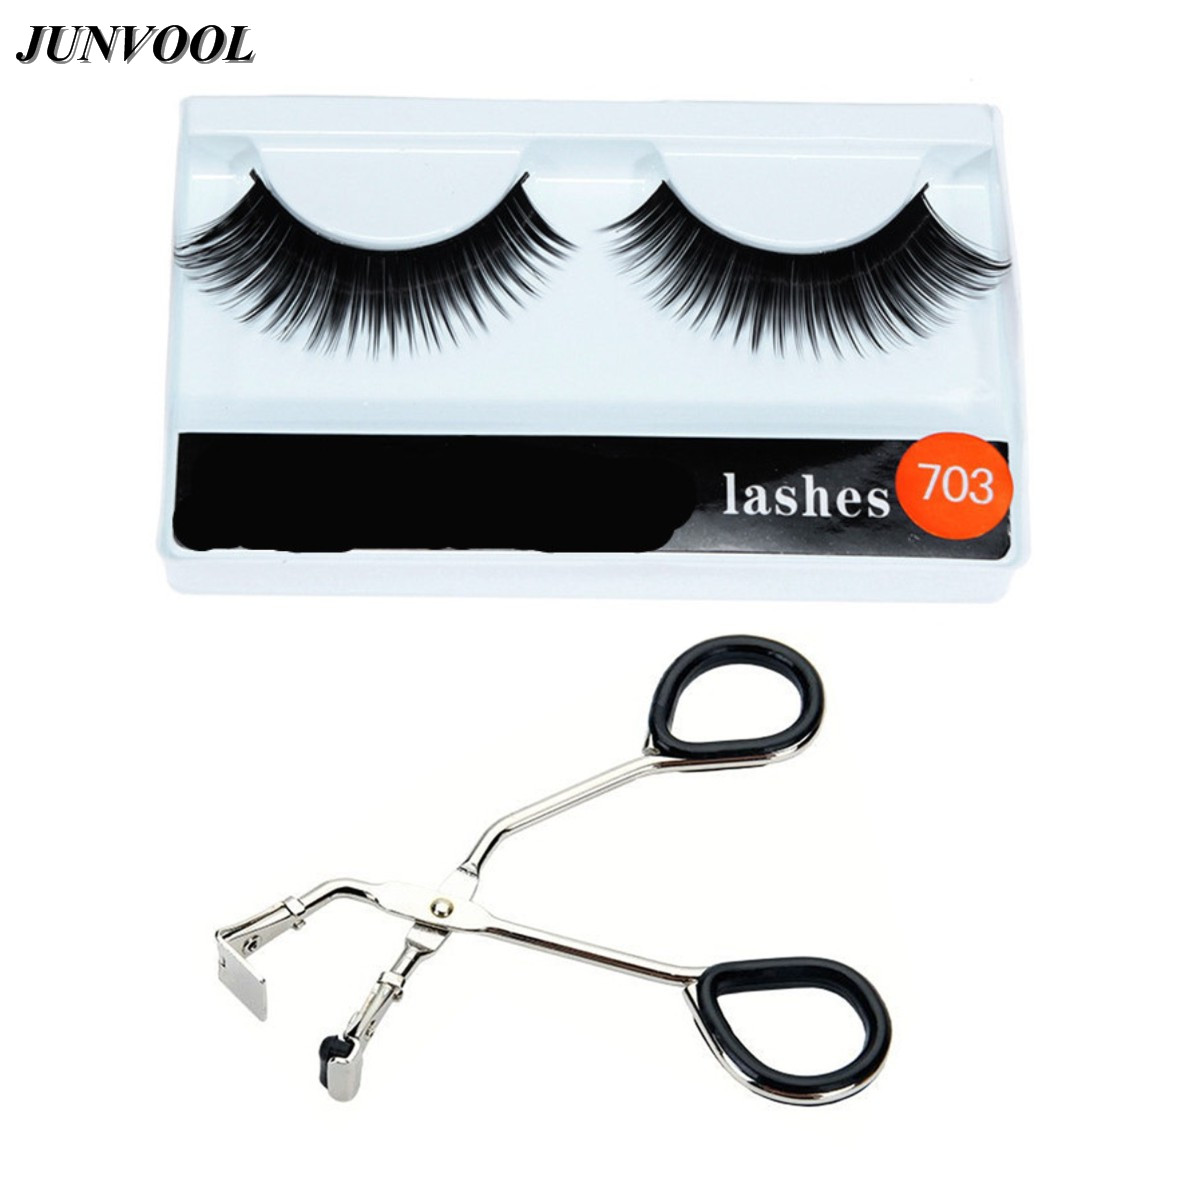 1 Pair False EyeLashes Thick Black False Eyelash Makeup Tips Natural Long Fake Eye Lashes + 1Pcs Mini Eyelashes Curler ...